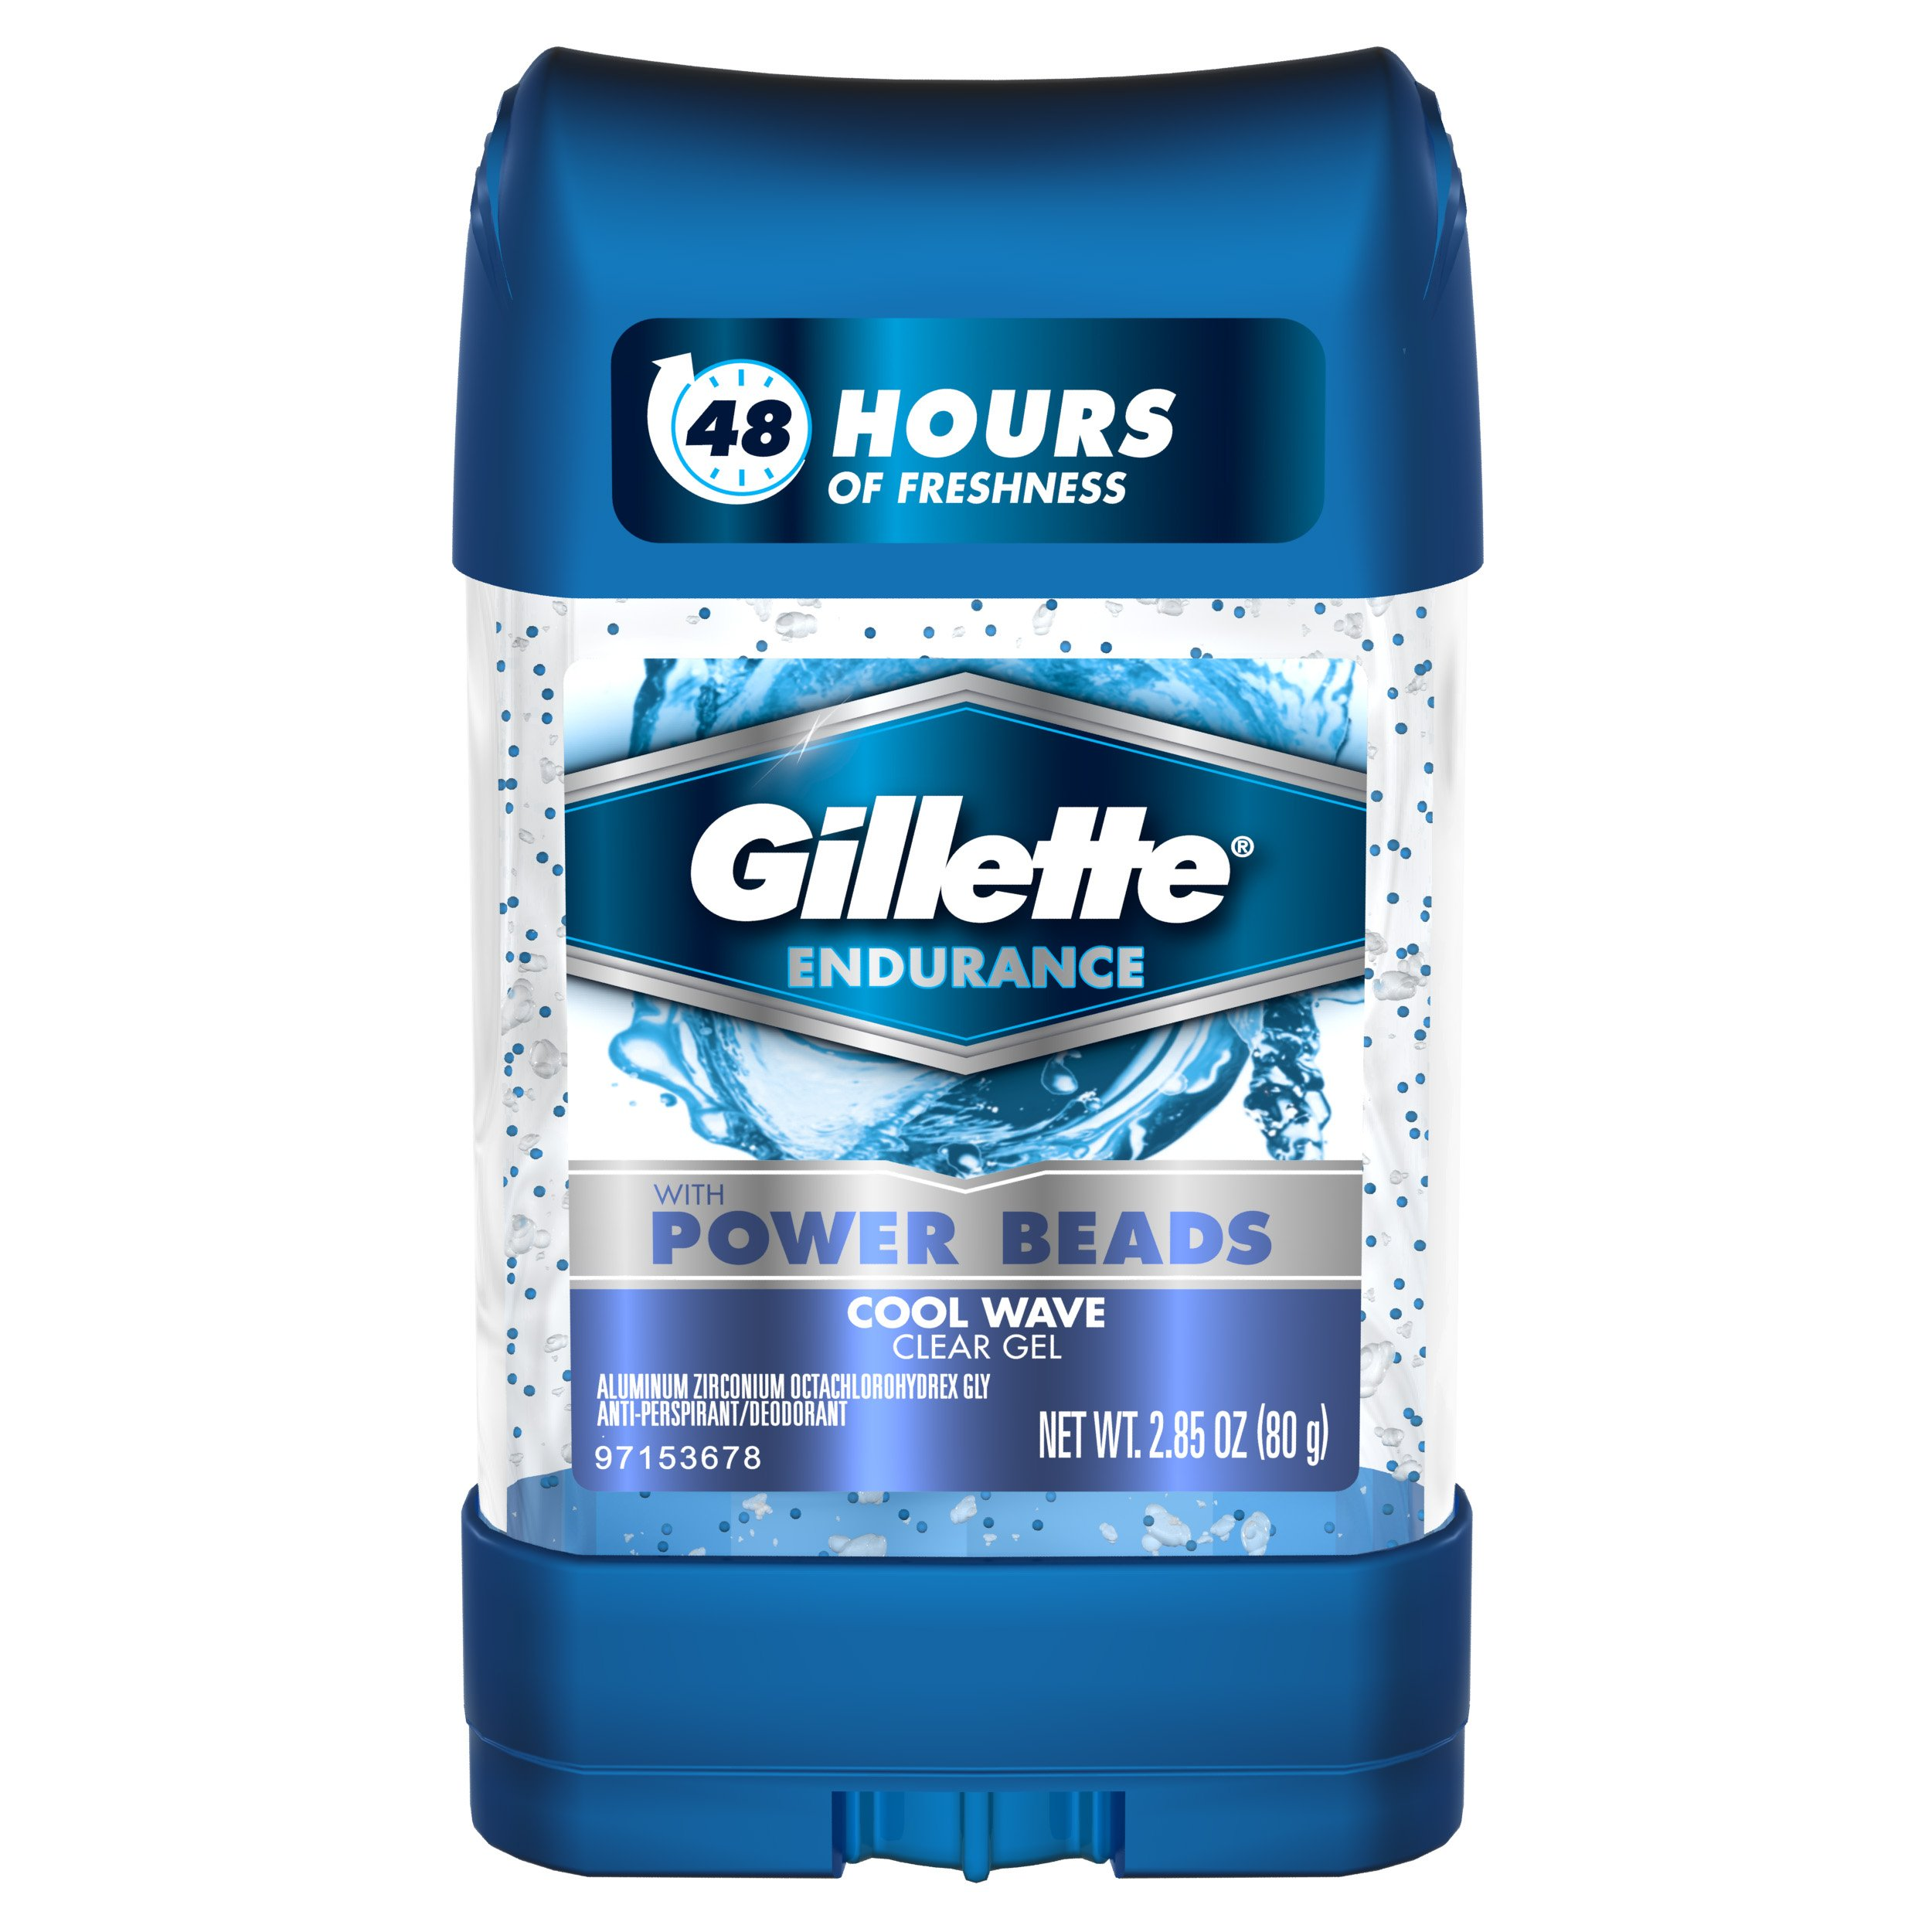 Gillette Clear Gel Power Beads Cool Wave Antiperspirant and Deodorant, 2.85 oz (pack of 3) by Gillette (Image #5)